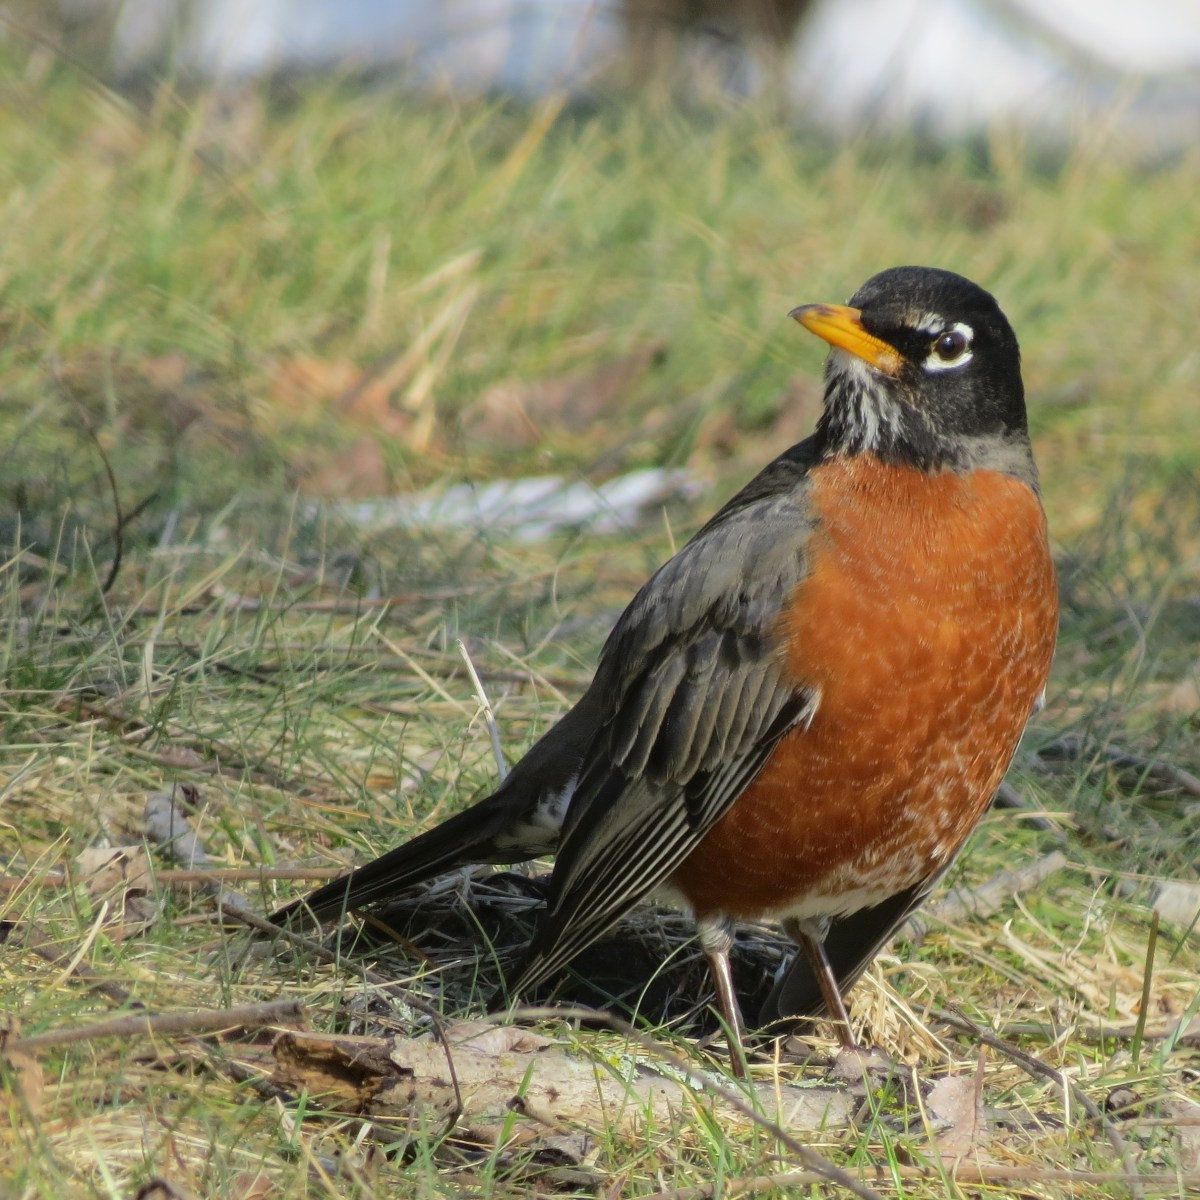 A Robin stands in a grassy area